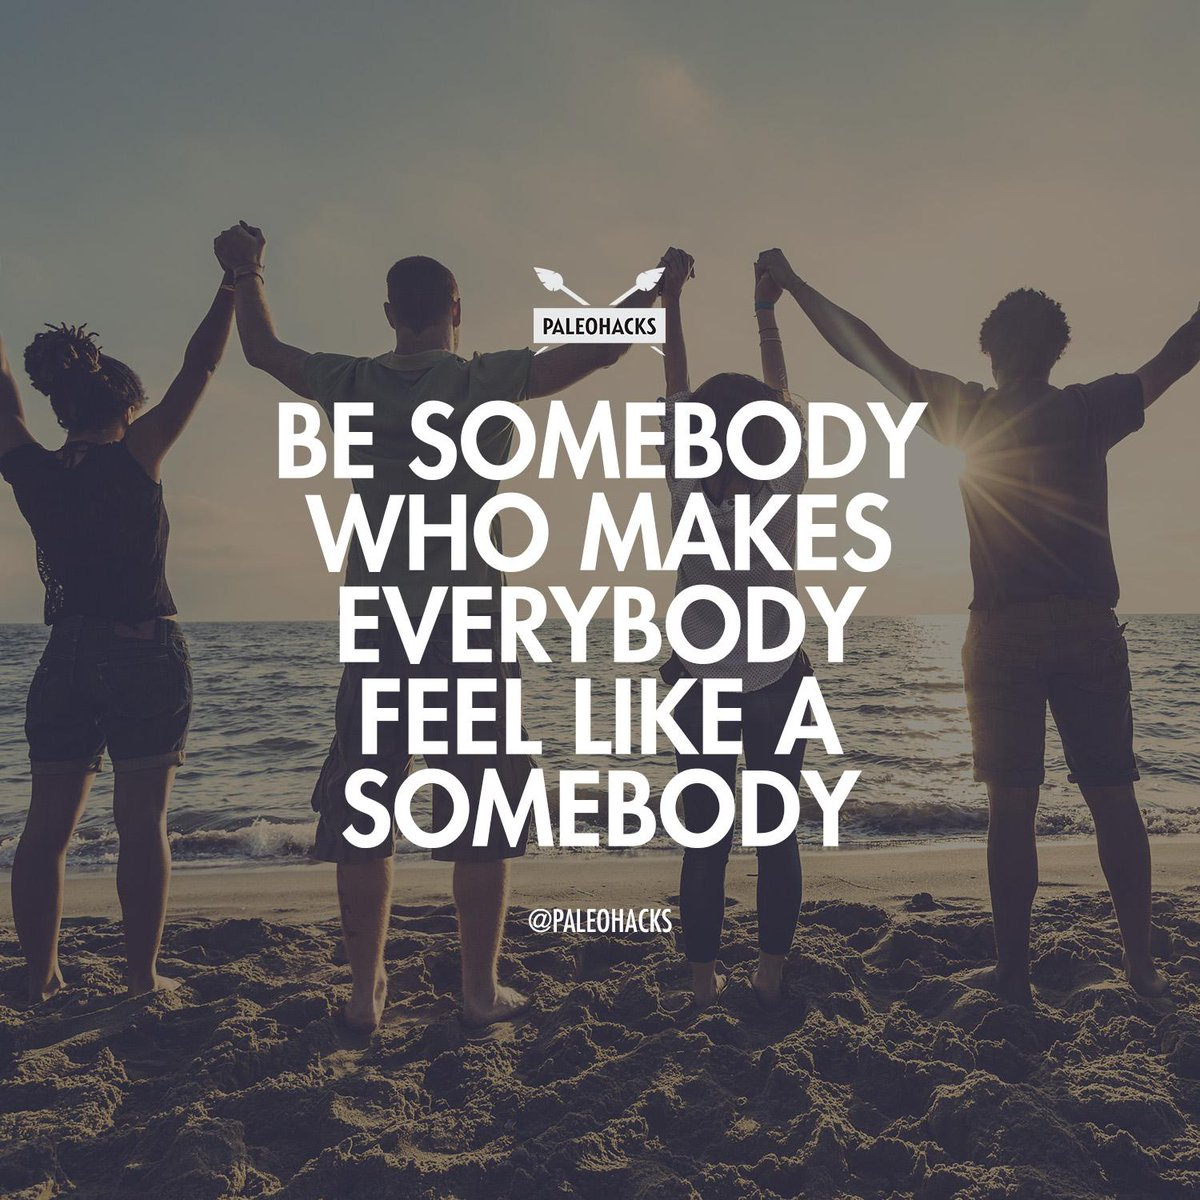 Be somebody who makes everybody feel like a somebody #MondayMotivation http://t.co/kde0mBYyTI